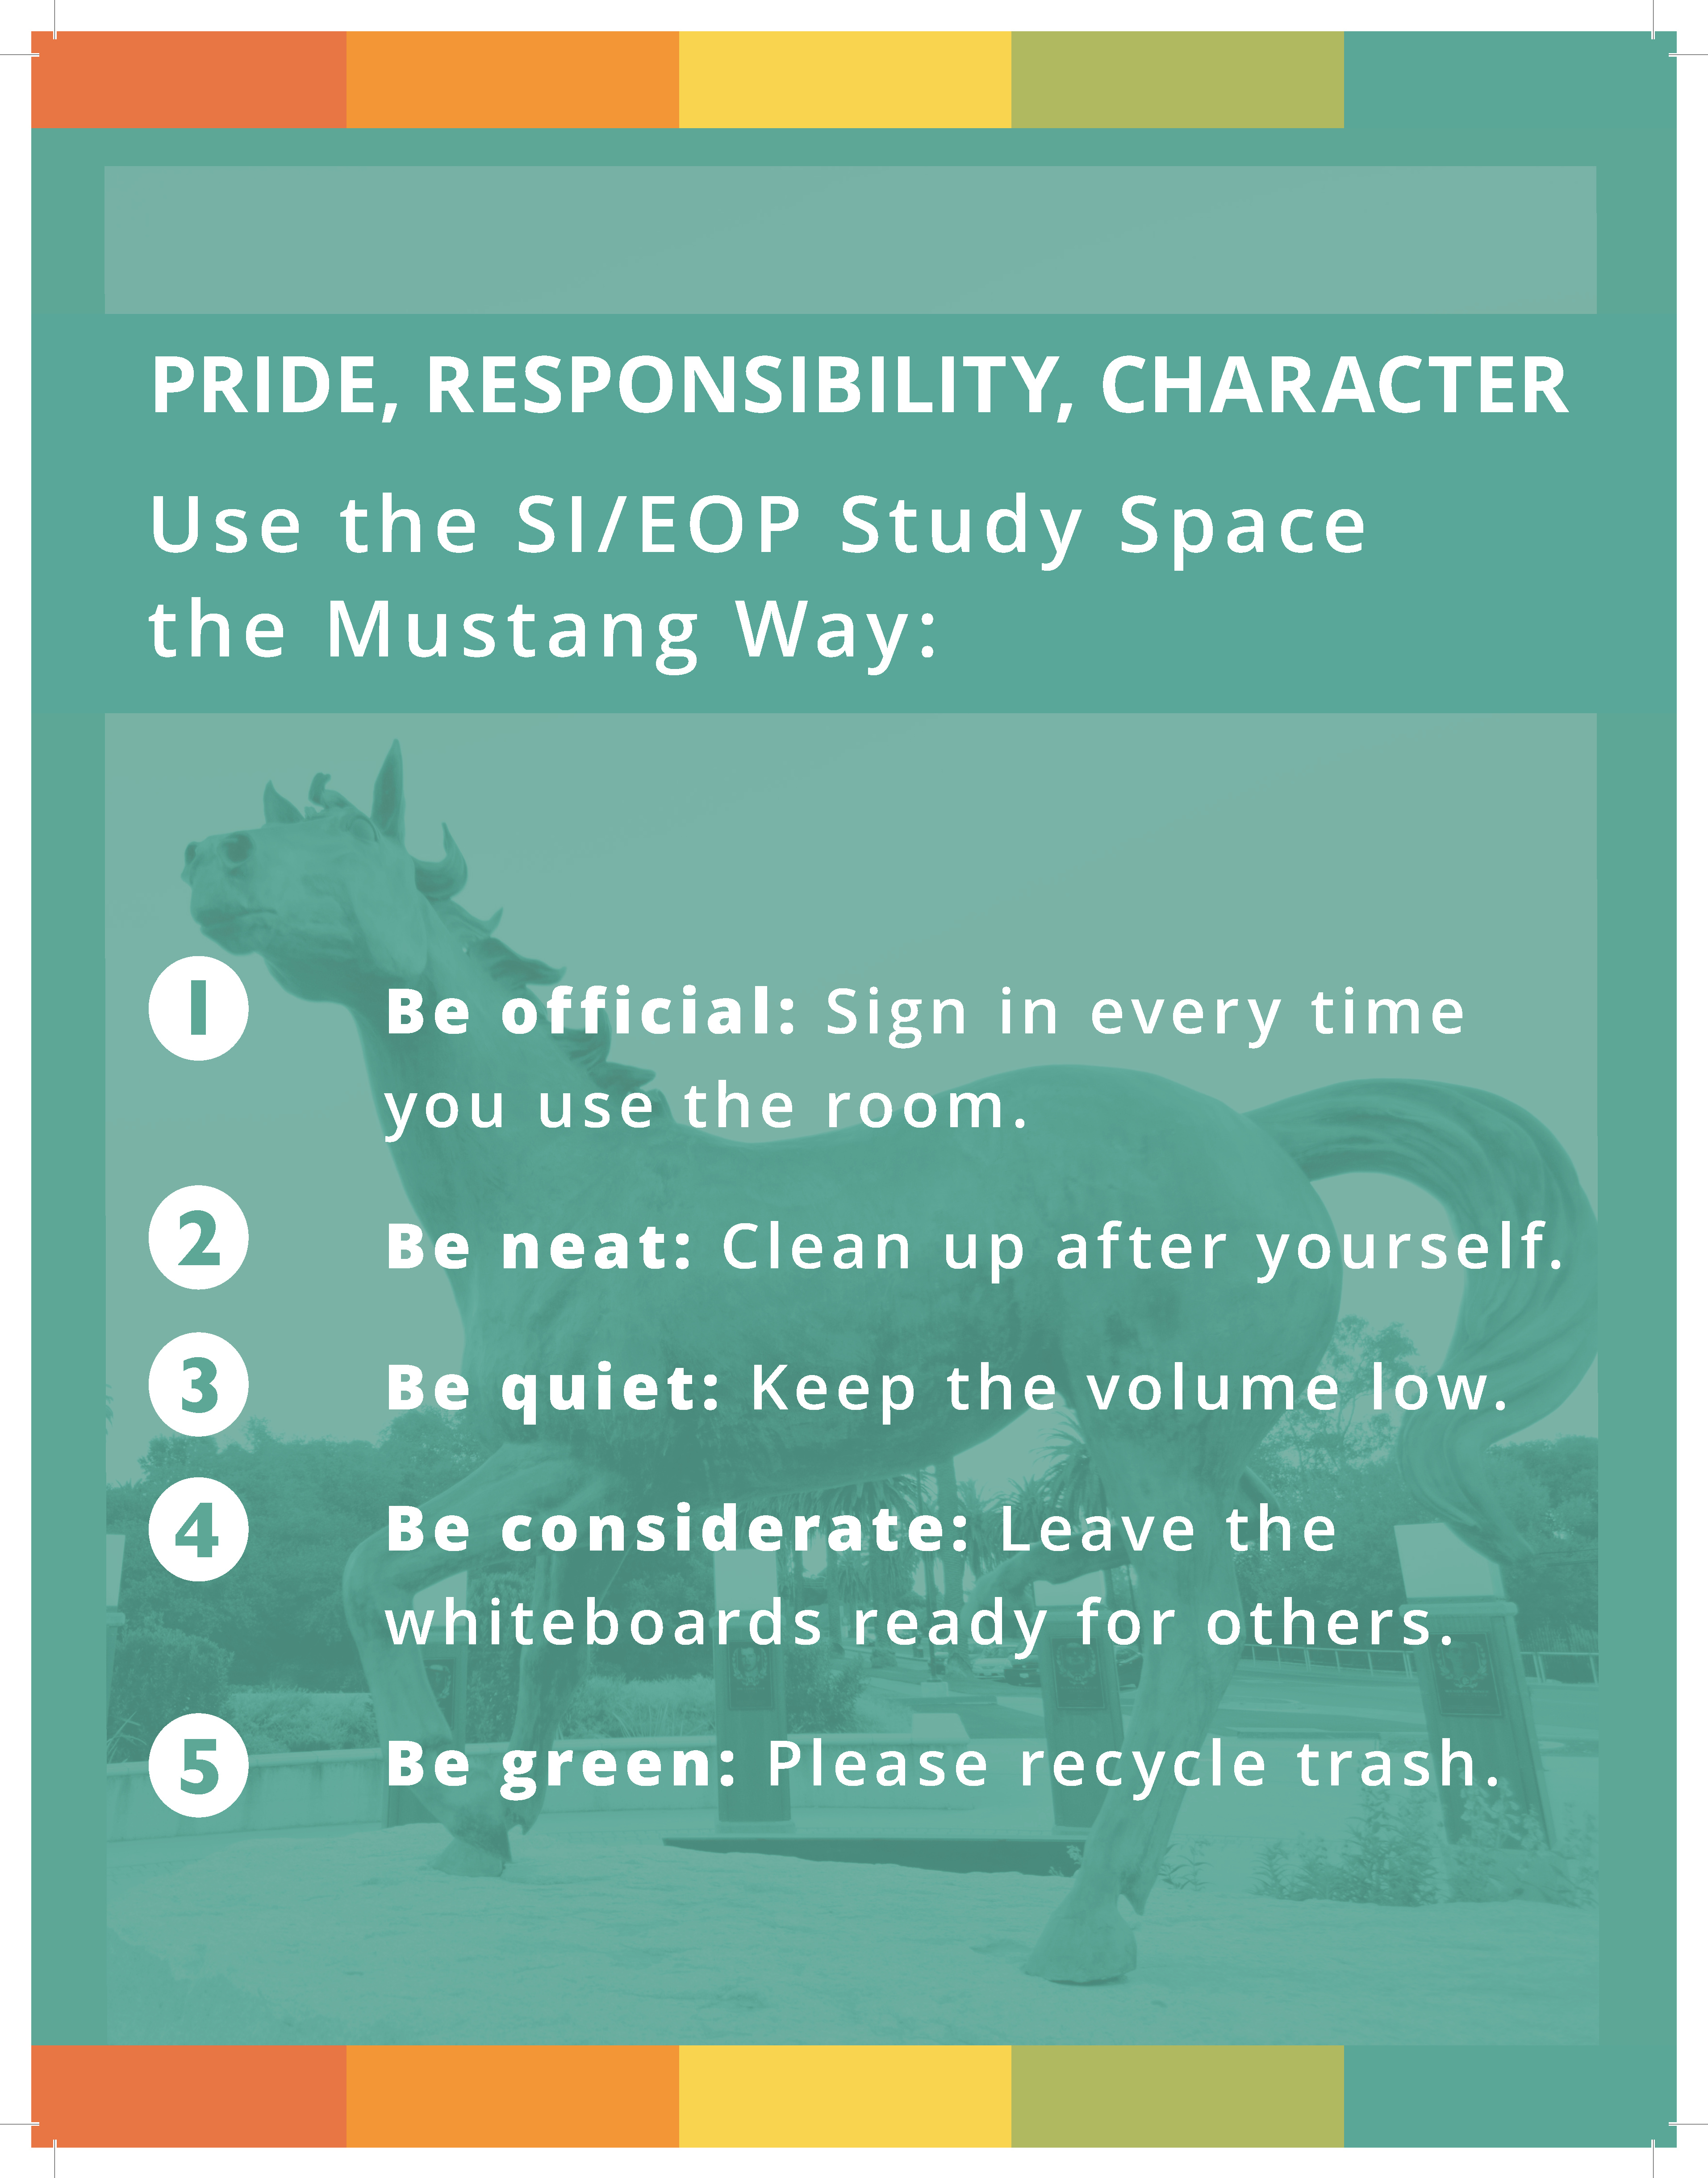 Pride, Responsibility, Character. Use the SI/EOP Study Space the Mustang Way: Be official: Sign in every time you use the room. Be neat: clean up after yourself. Be quiet: Keep the volume low. Be considerate: Leave the whiteboards ready for others. Be green: Please recycle trash.